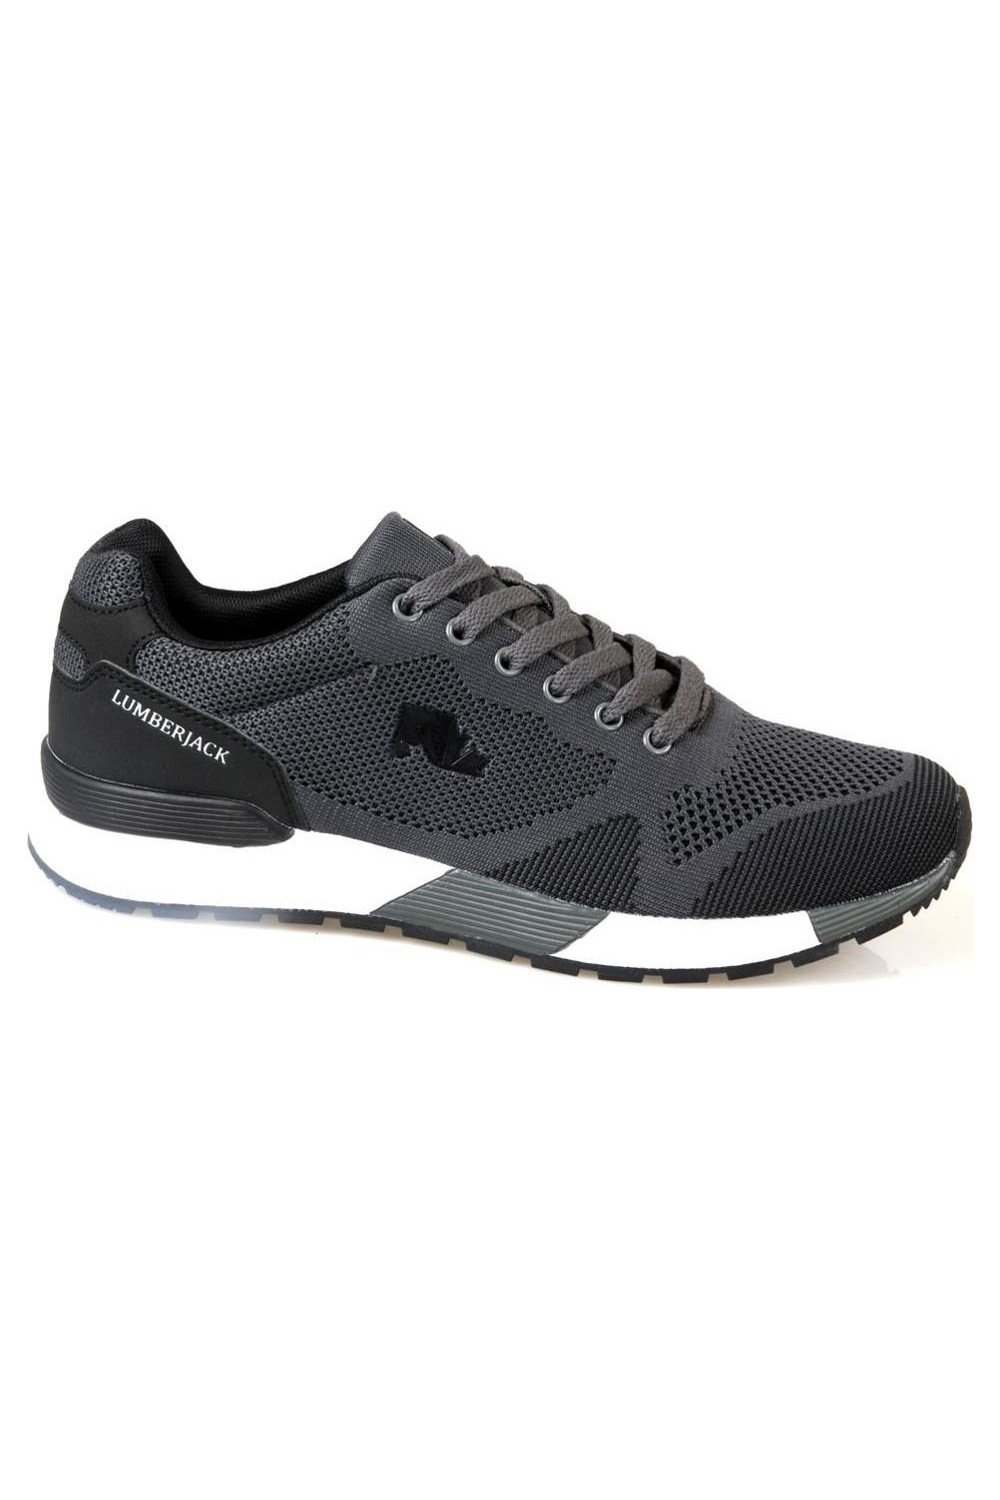 Lumberjack Men's Sport Shoes